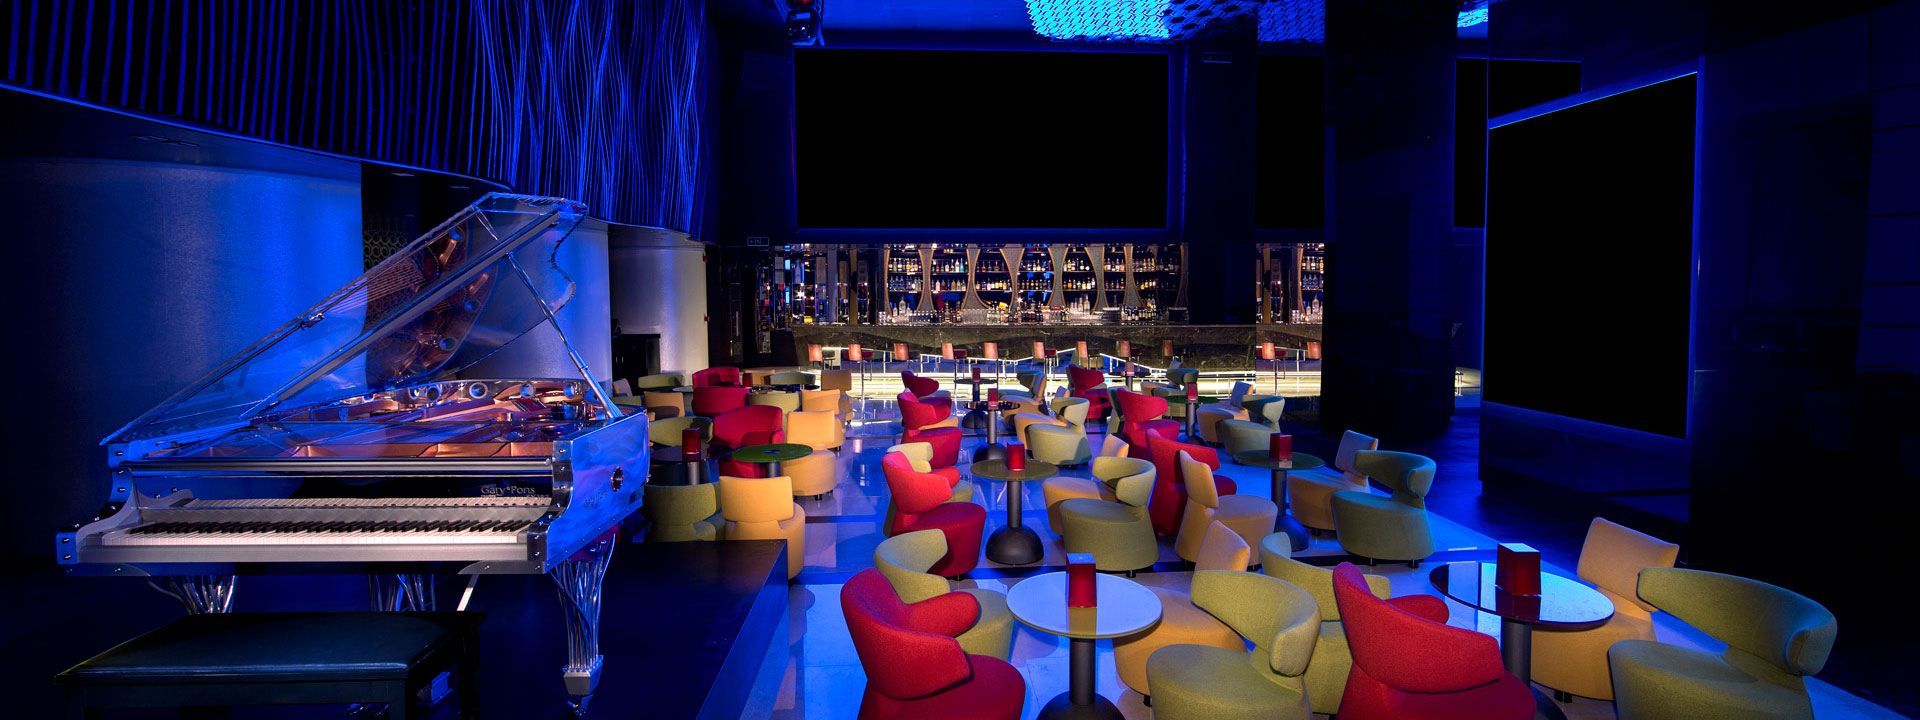 La Cigale Hotel - Nightlife